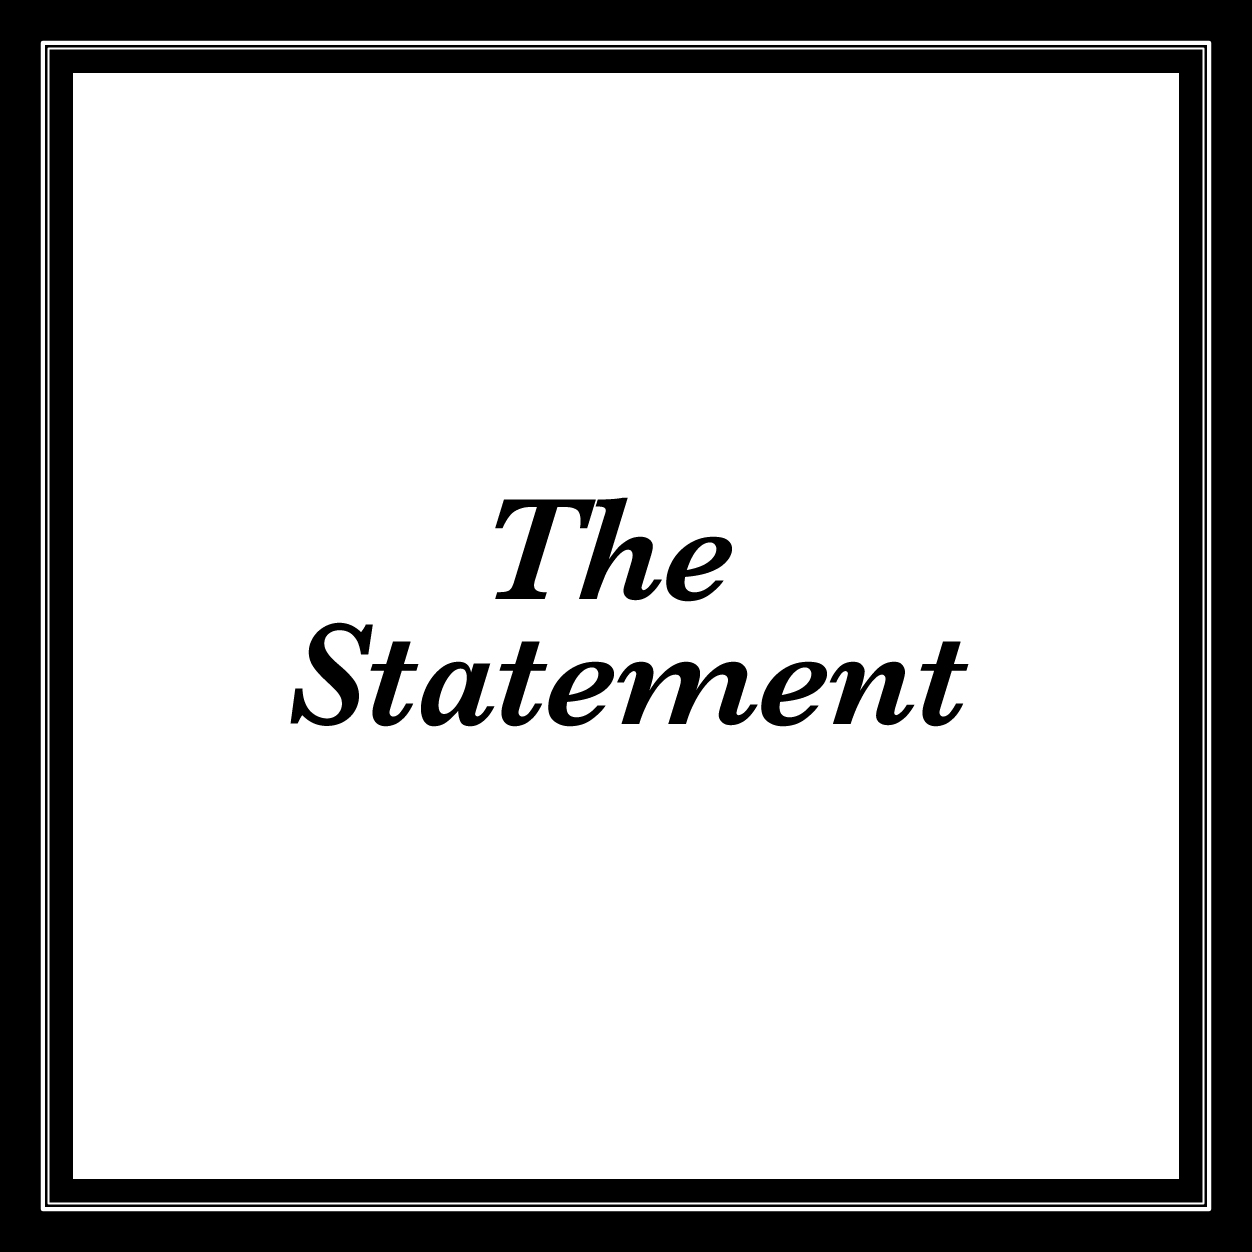 Thb the statement text